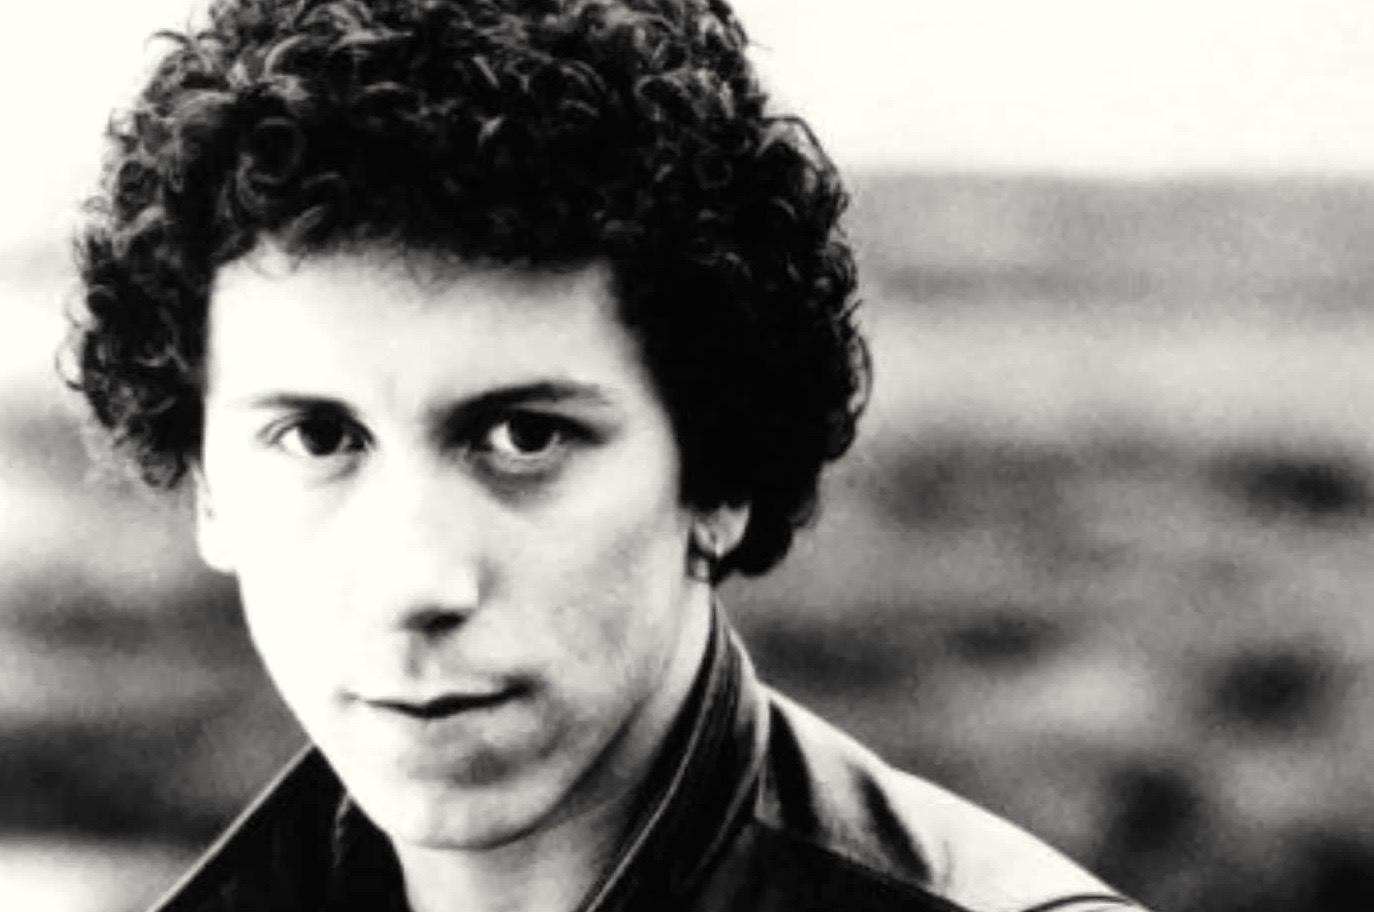 music_paul_hardcastle2.jpg